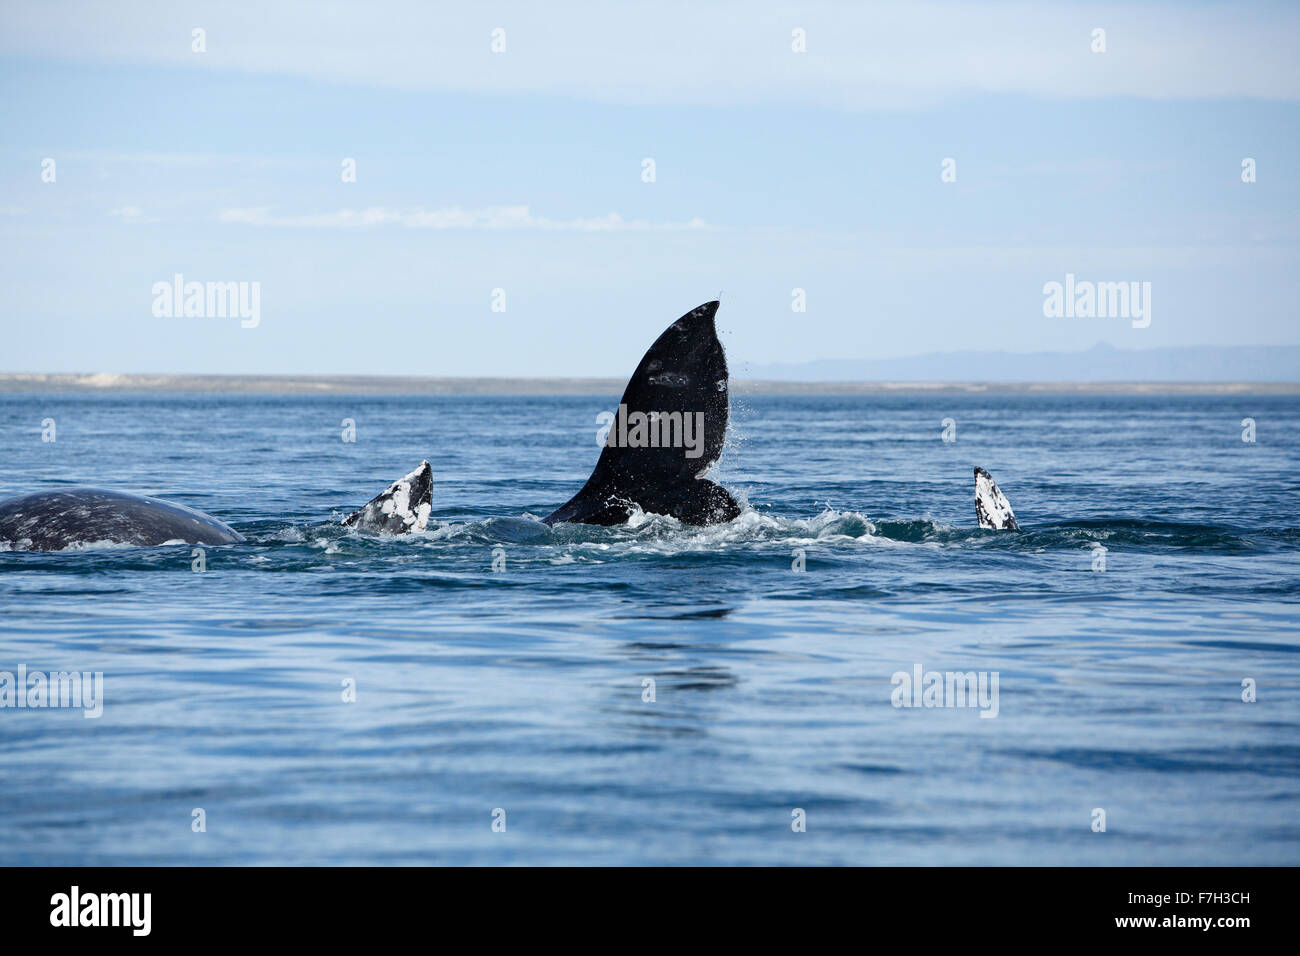 pr5227-D. Gray Whales (Eschrichtius robustus), a mating group- two males and one female. San Ignacio Lagoon, Baja, - Stock Image